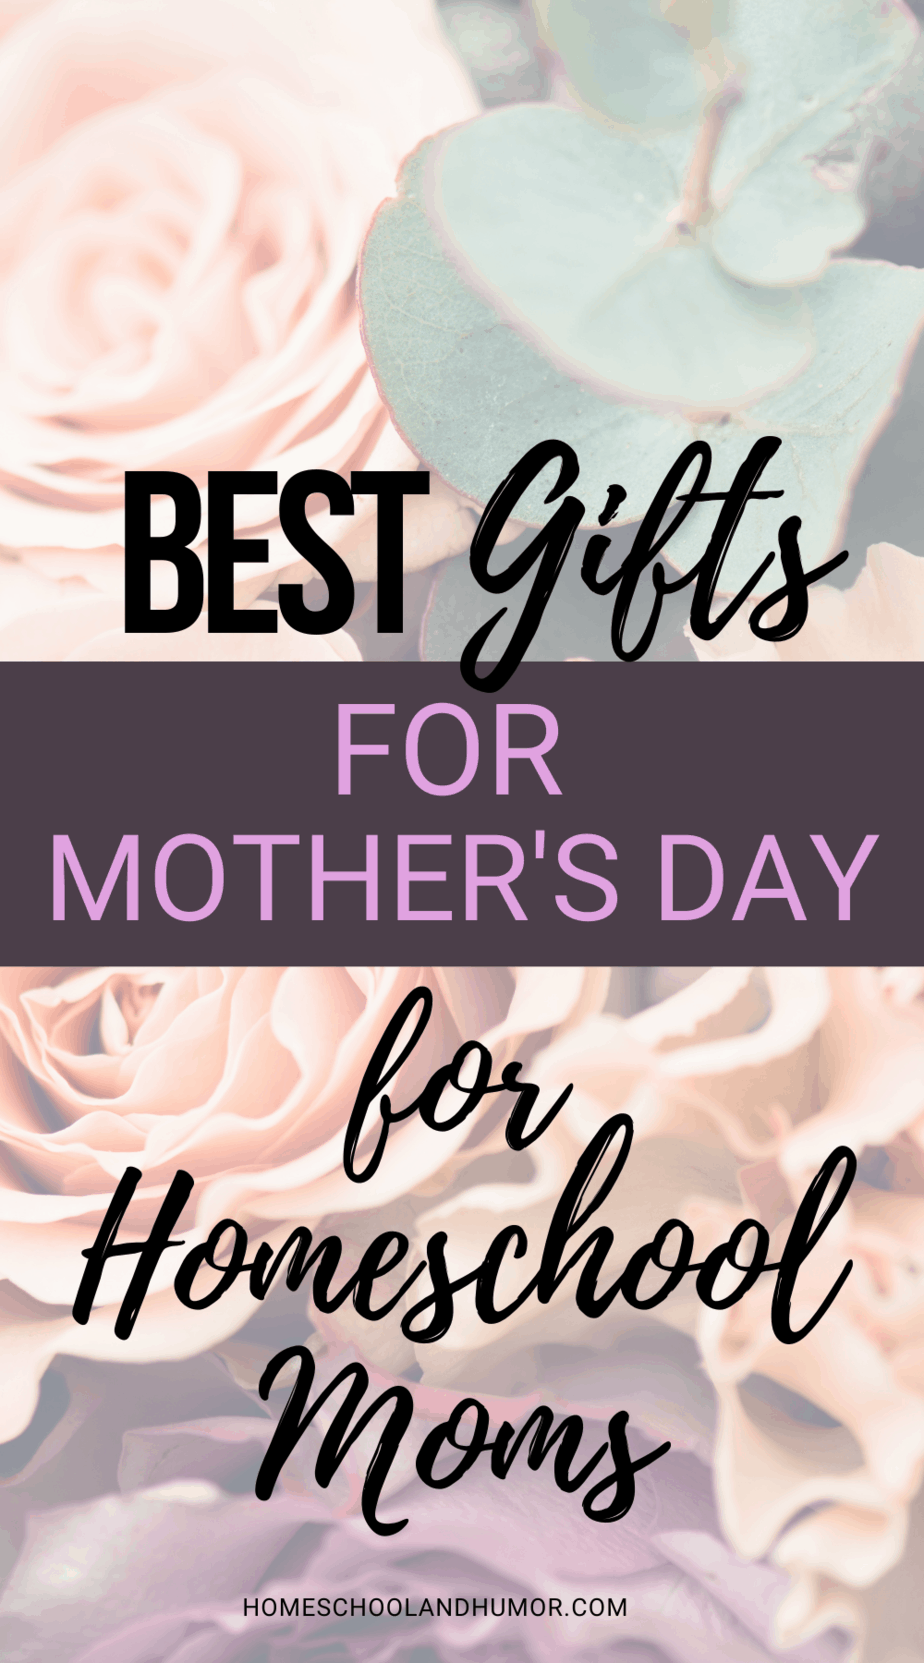 The Best Gifts for Homeschool Moms To Make Her Life Easier (2021)